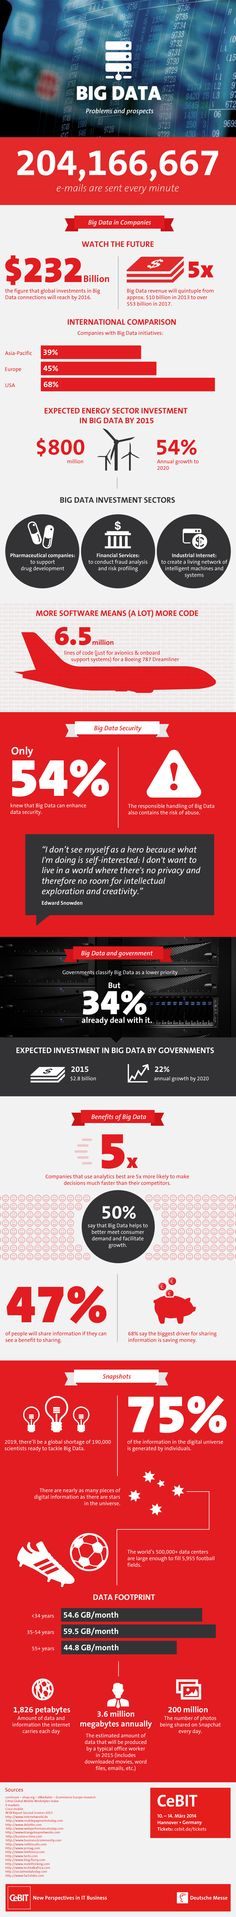 "Big Data: Problems and Solutions"" – CeBIT Infographic"